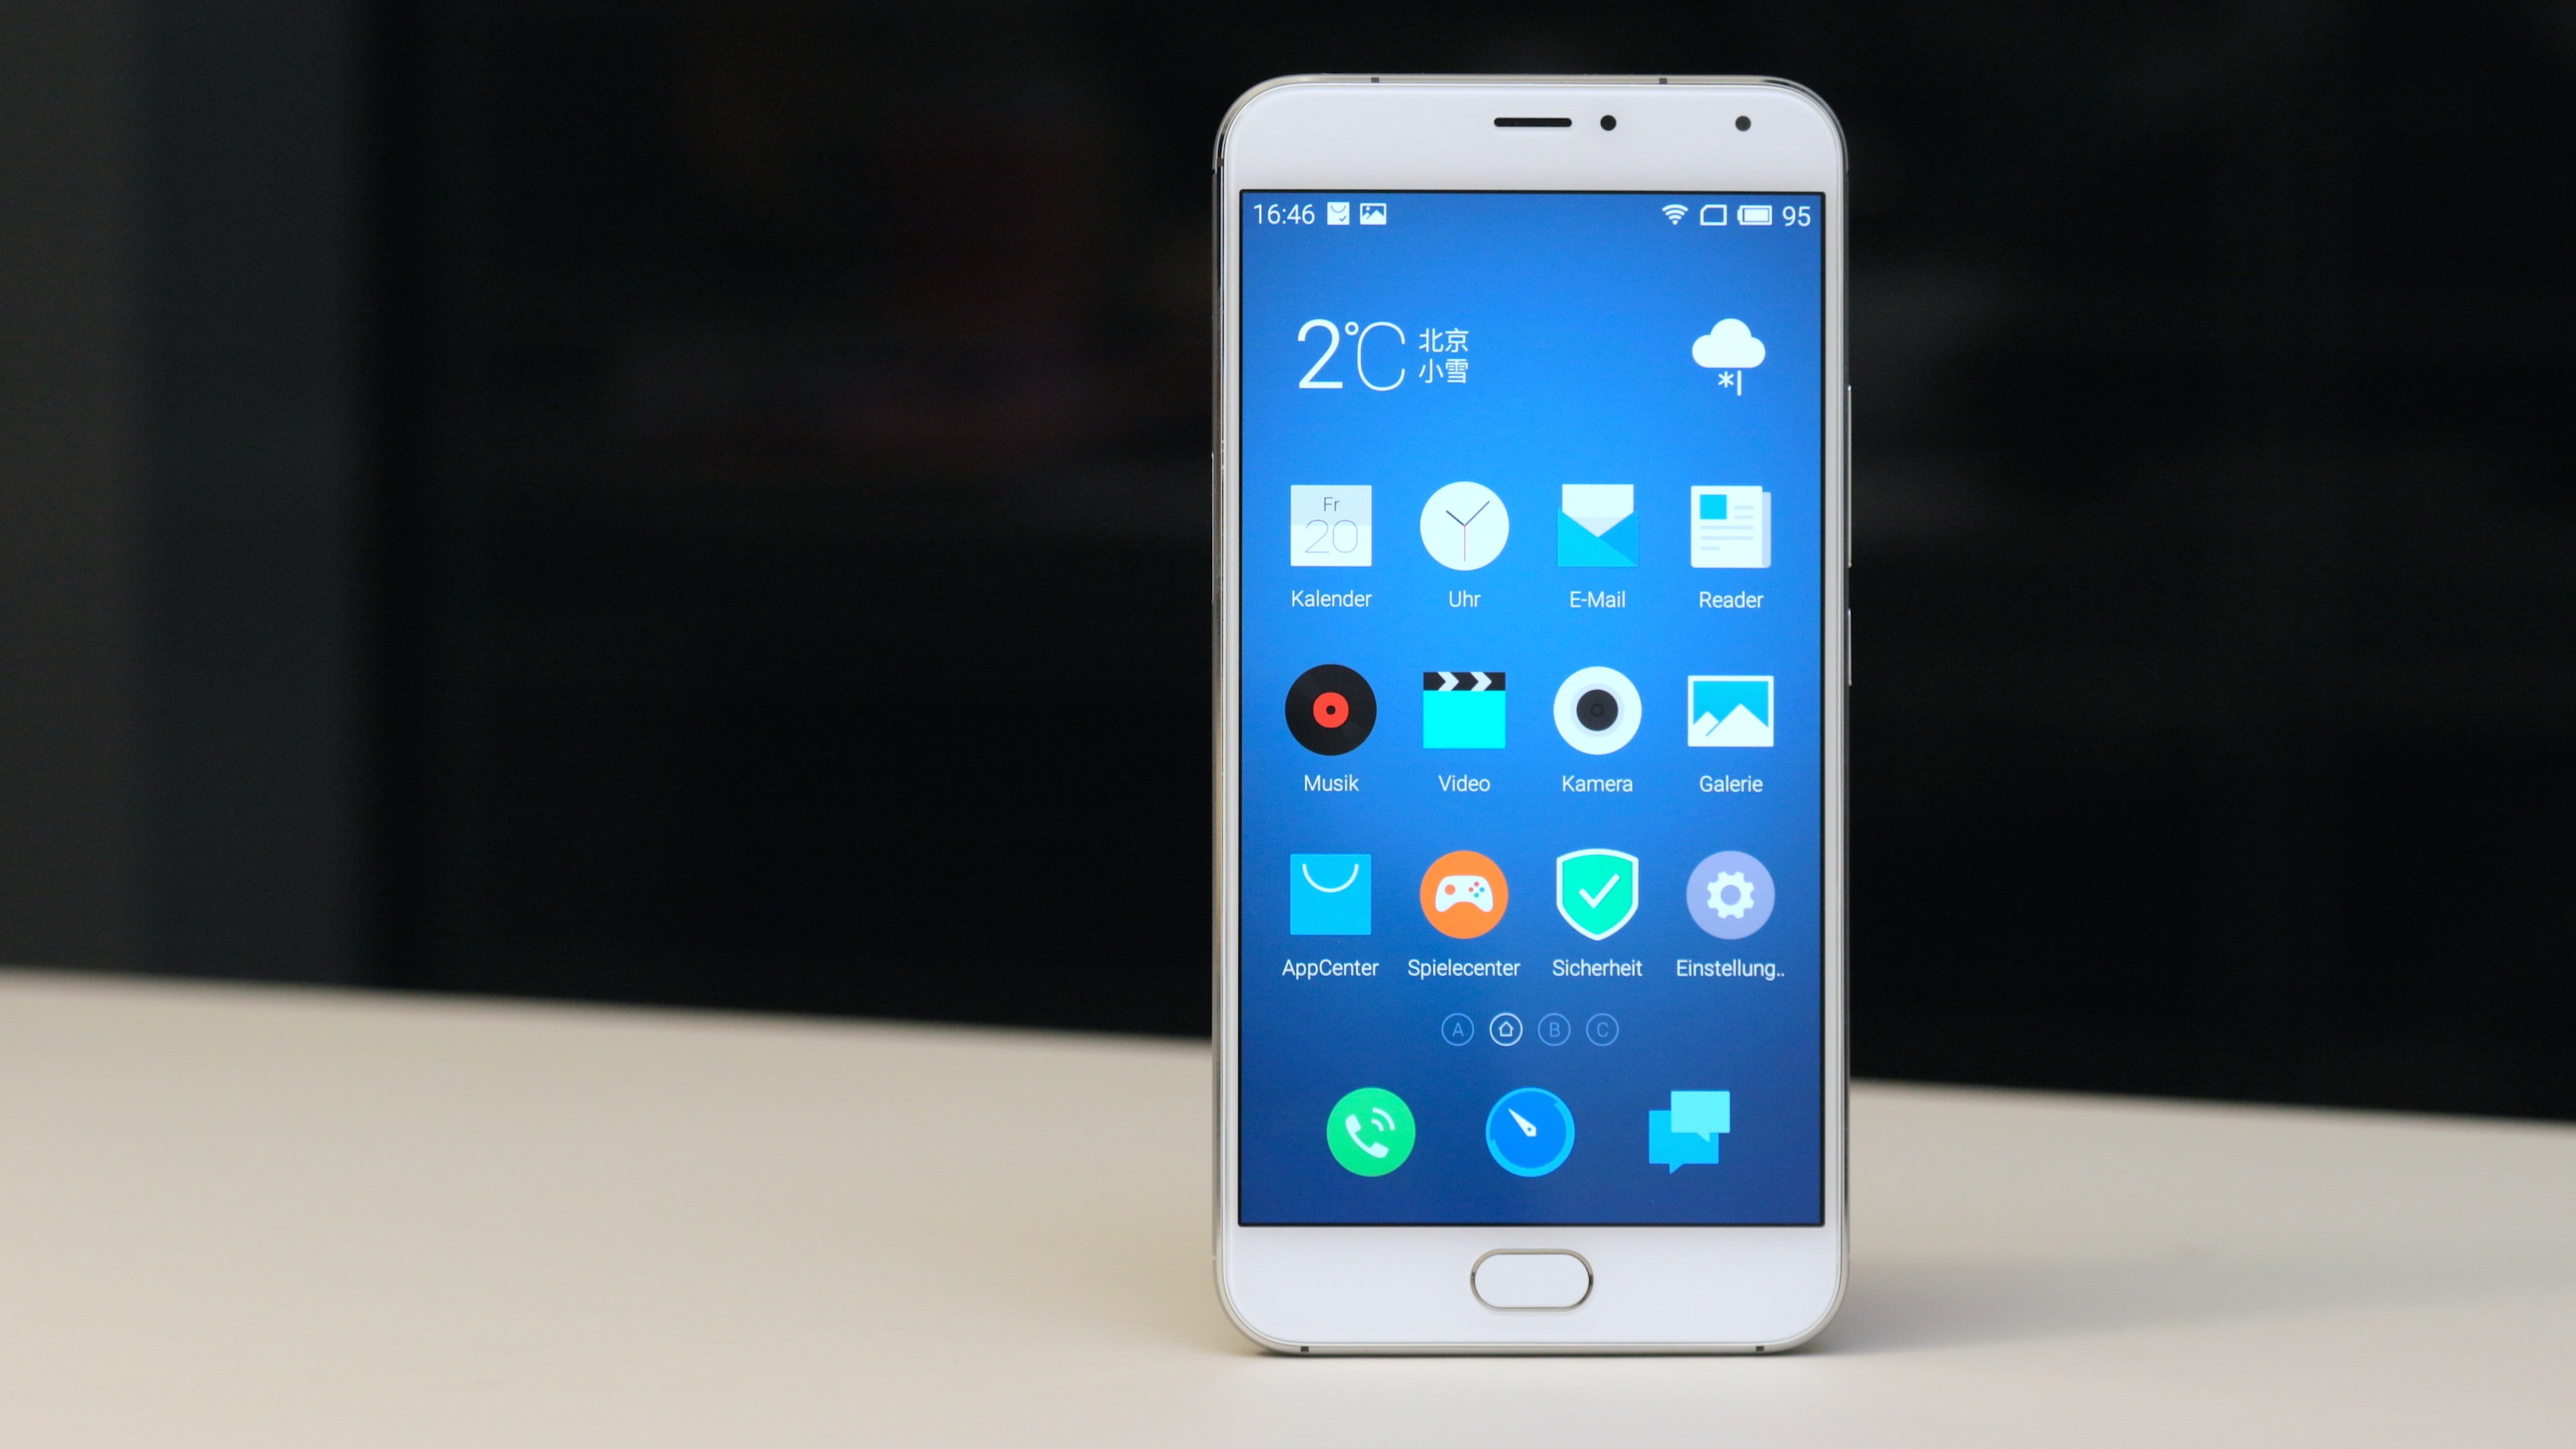 meizu pro 5 im test das schnellste smartphone 2015. Black Bedroom Furniture Sets. Home Design Ideas